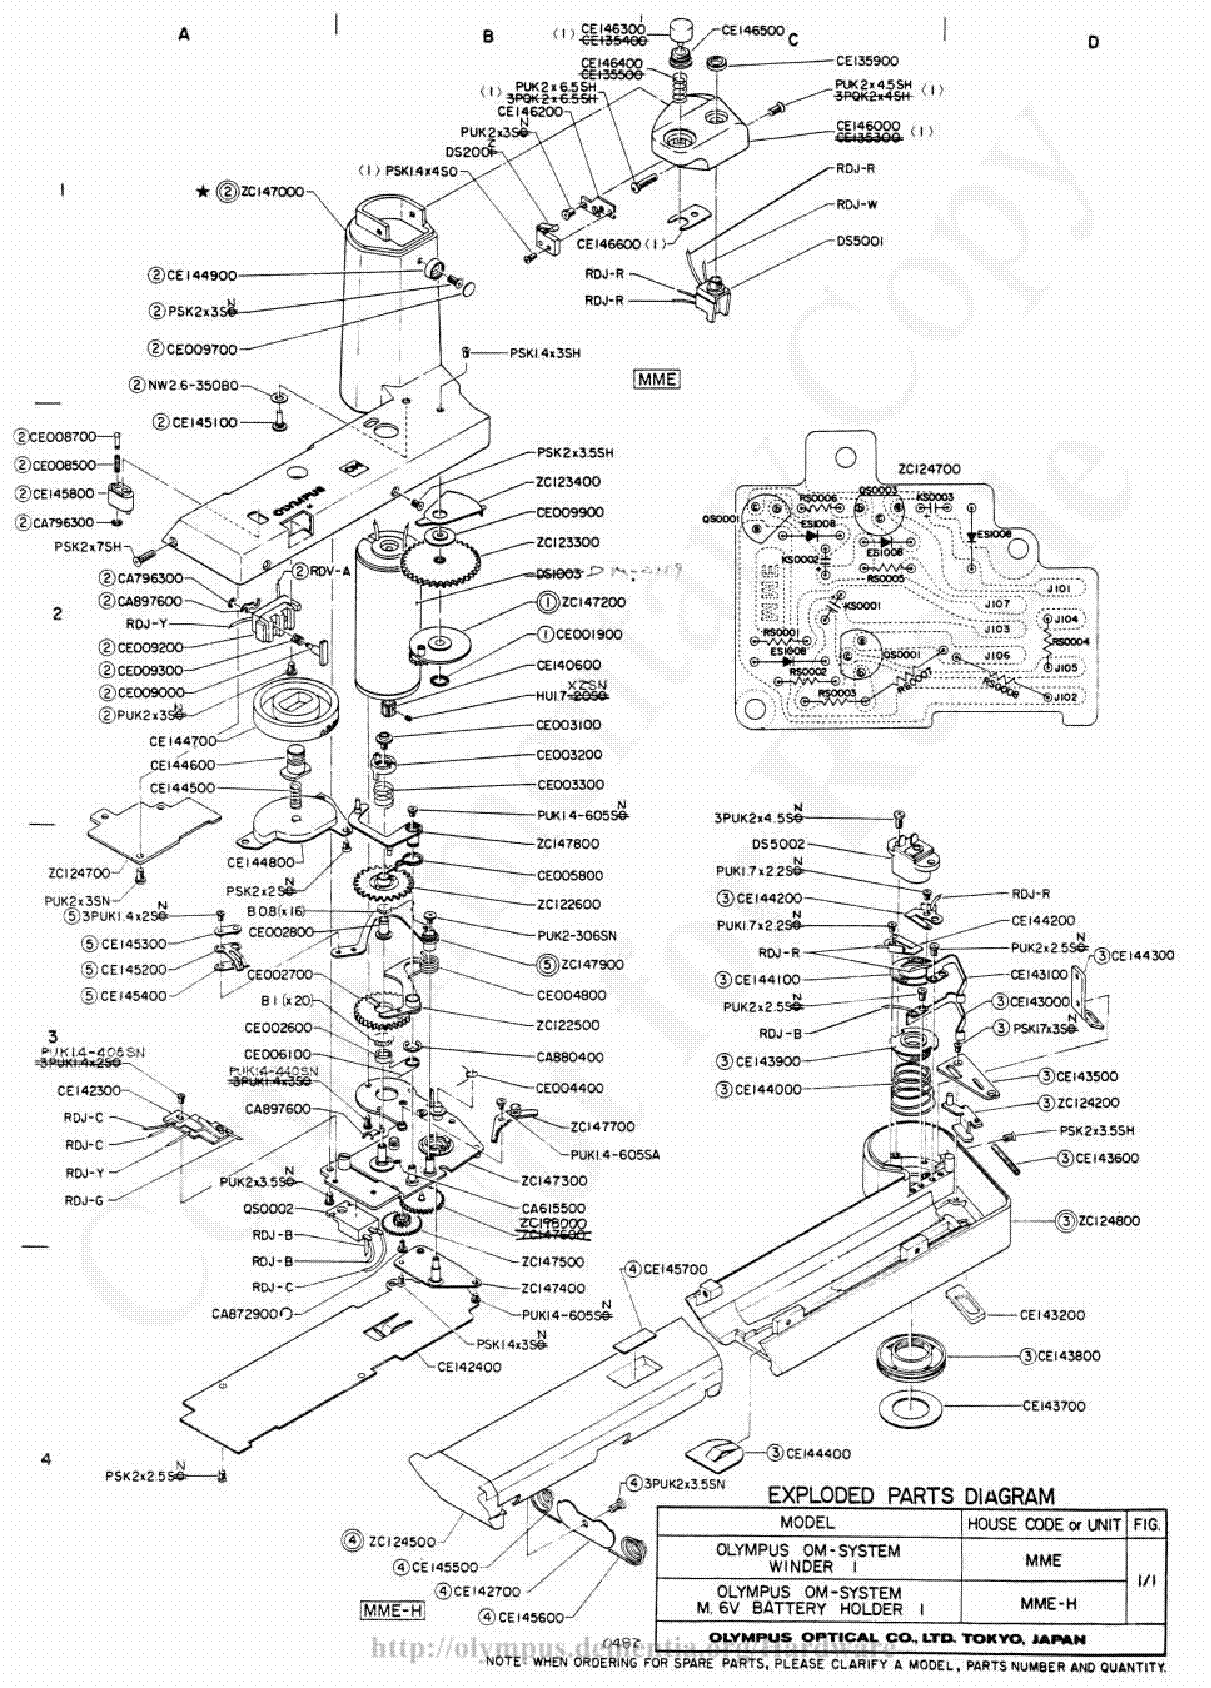 Olympus winder1 exploded parts diagram service manual 1st page olympus winder1 exploded parts diagram service